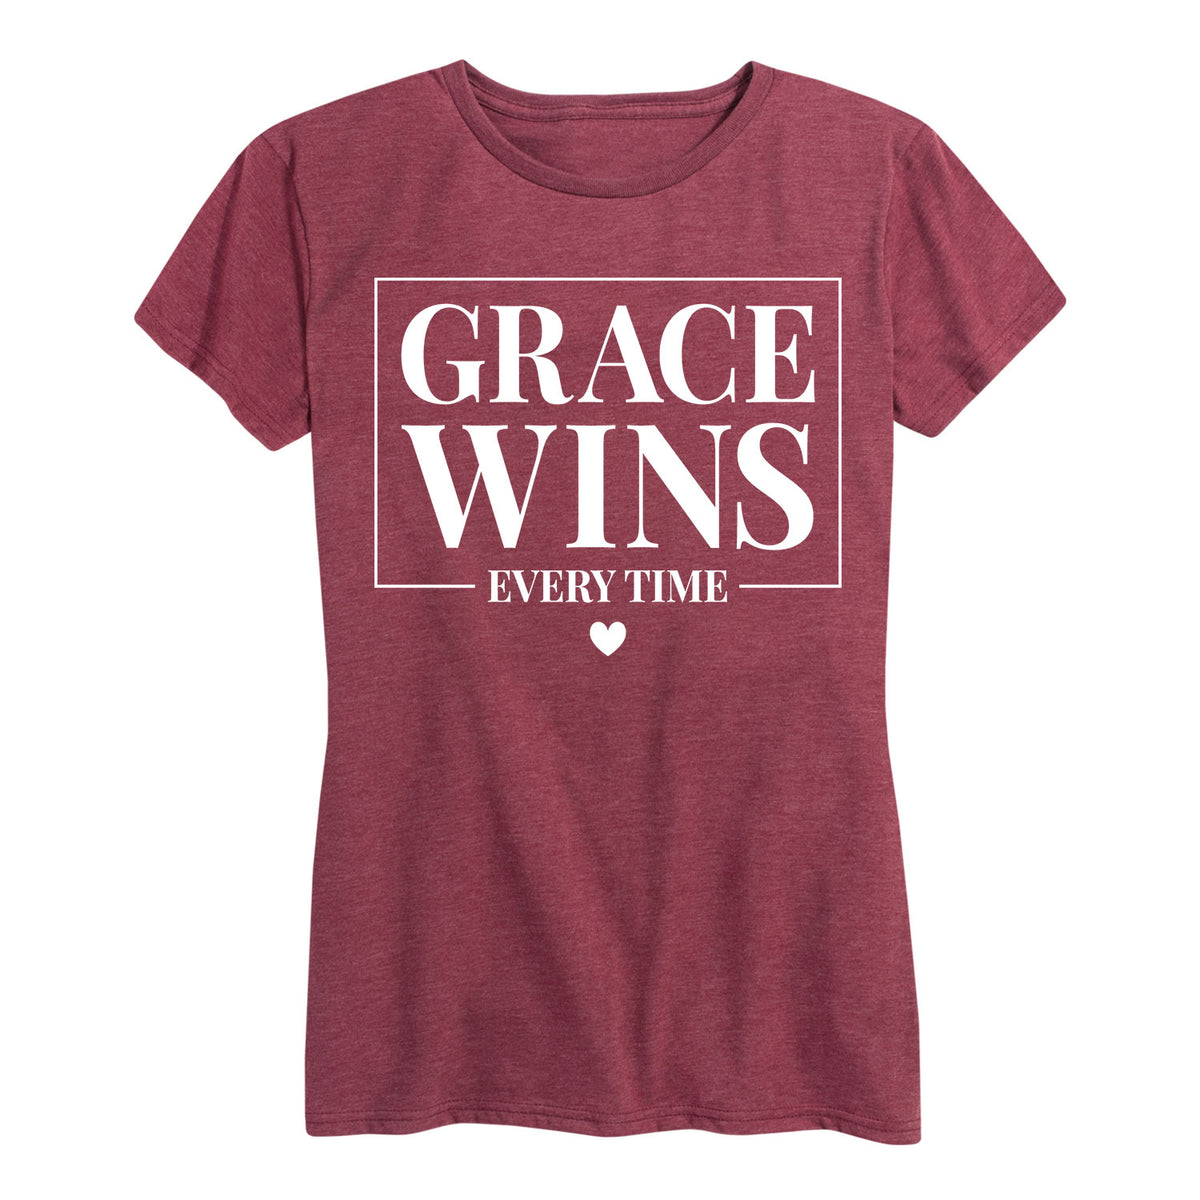 Grace Wins Every Time - Women's Short Sleeve T-Shirt